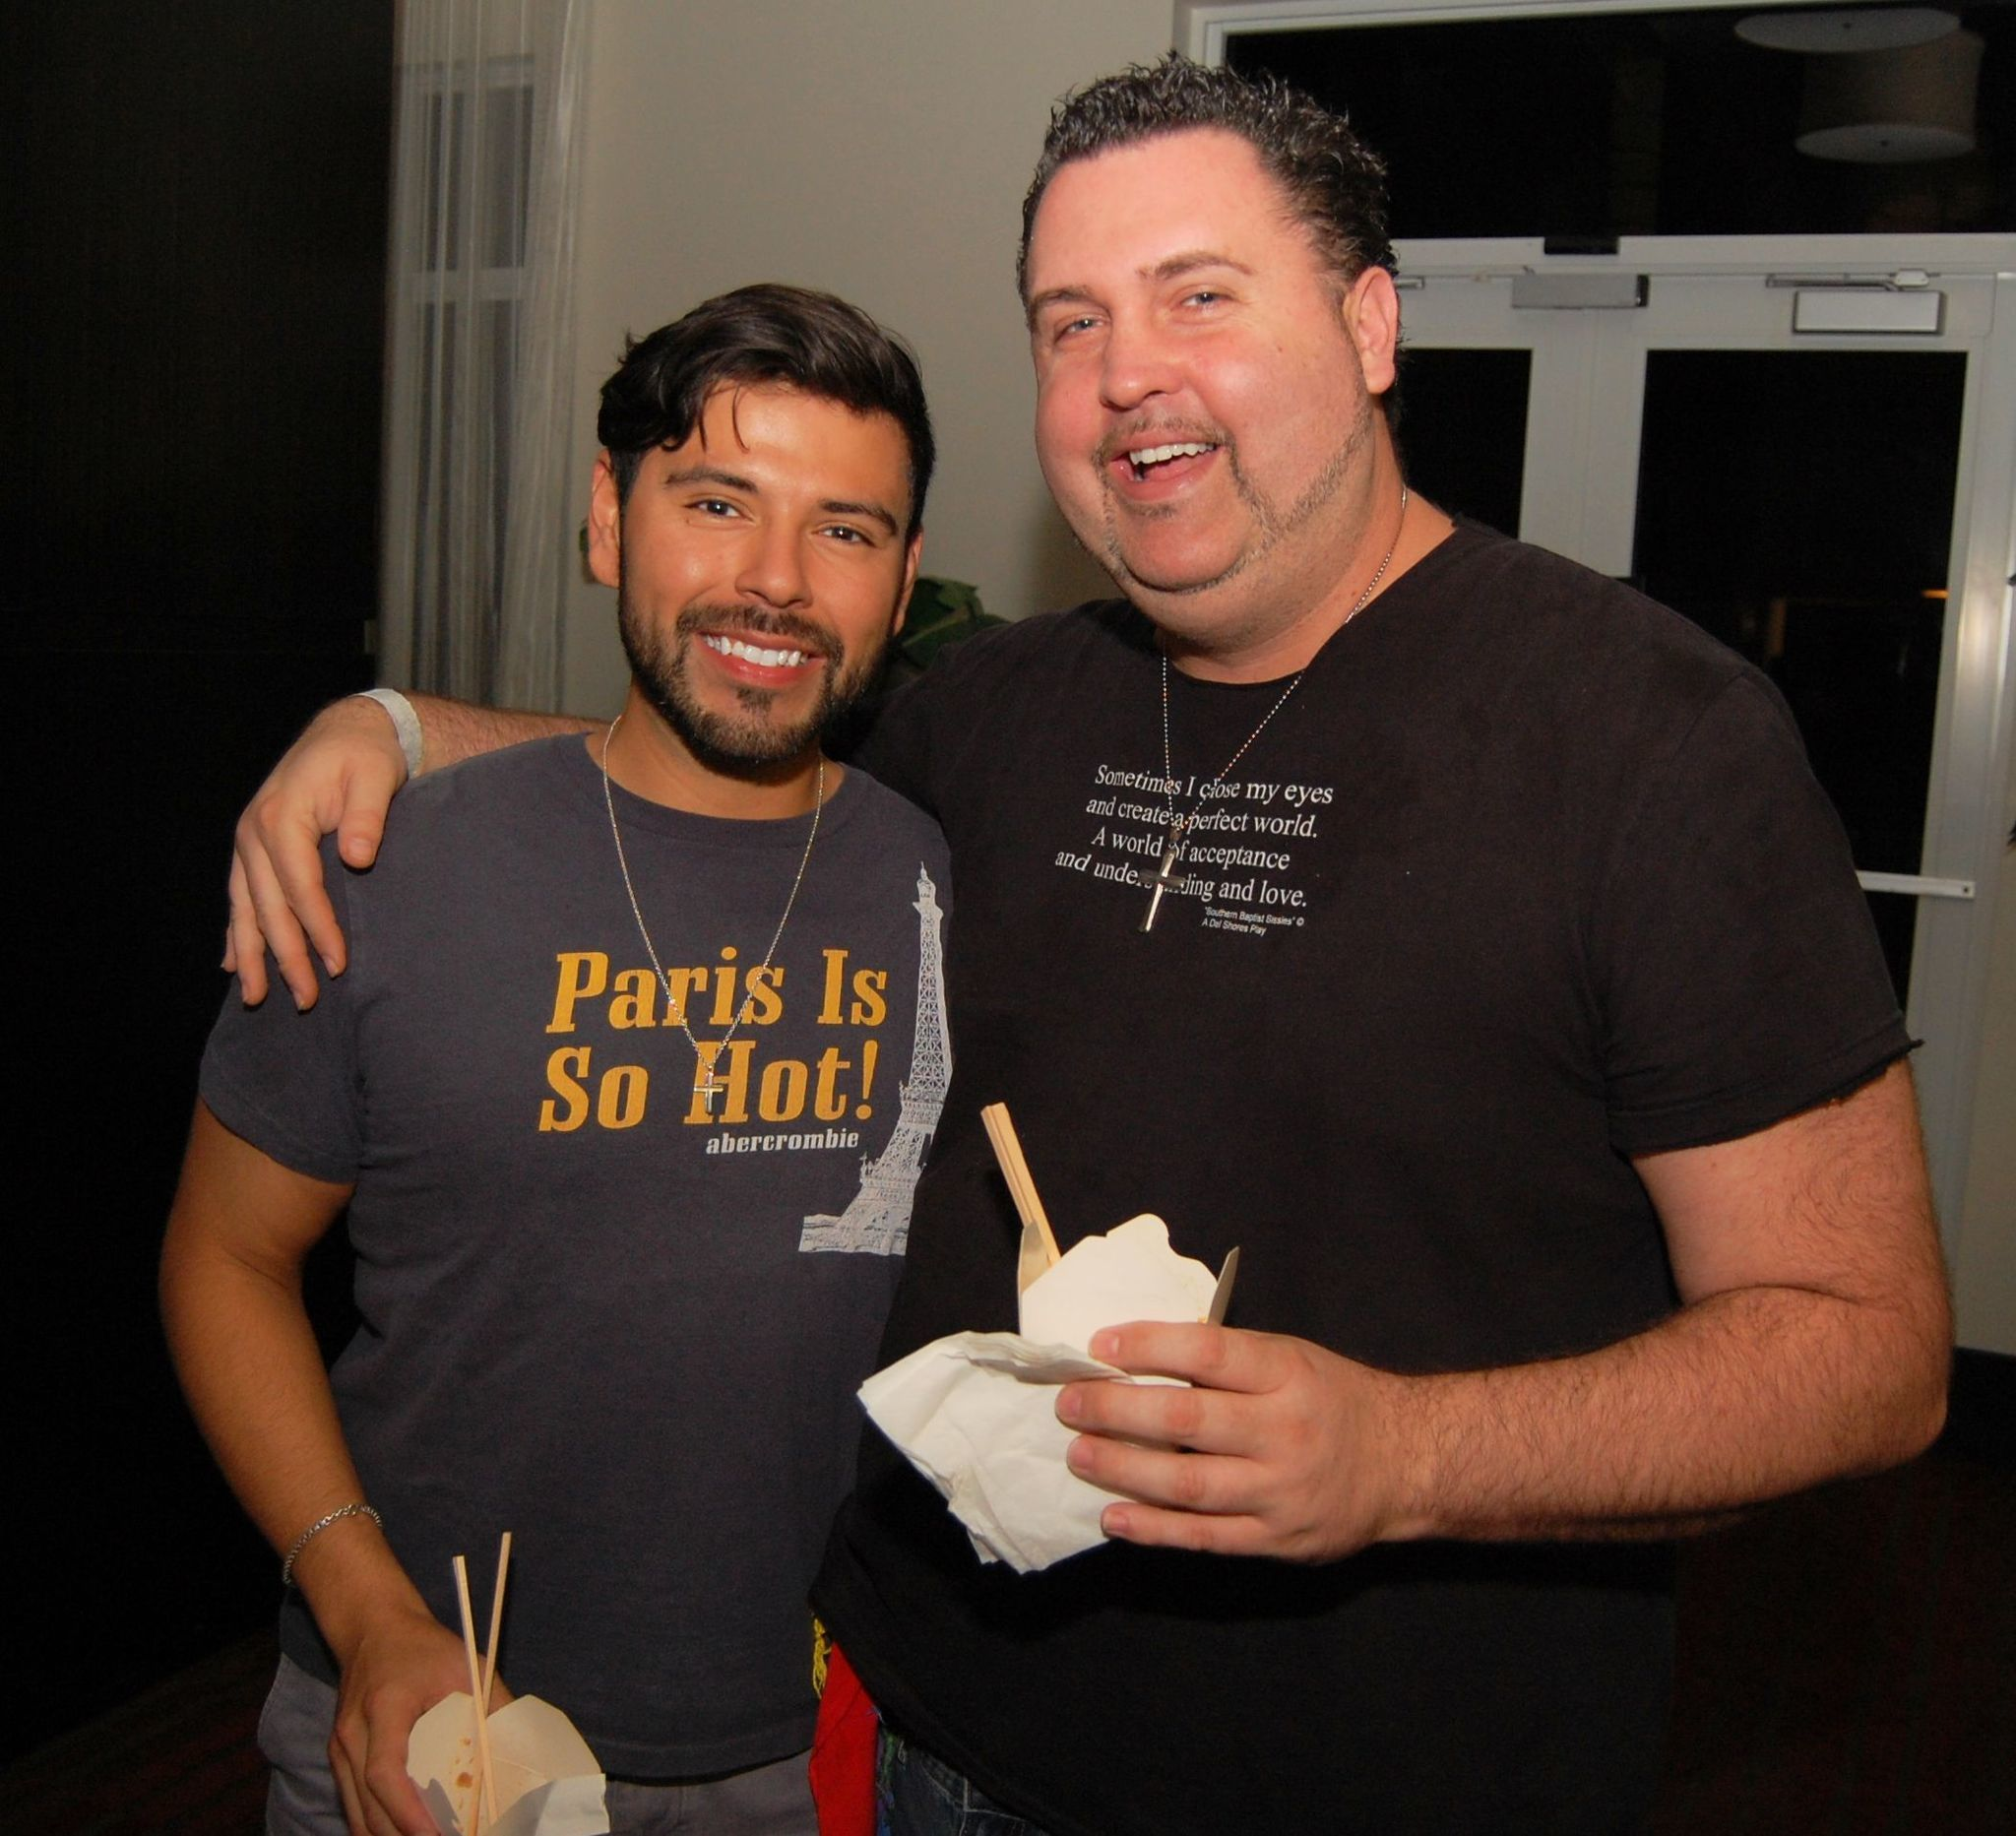 PHOTOS: Closing parties at the Fort Lauderdale Gay and Lesbian Film Festival - PHOTOS: Closing parties at the Fort Lauderdale Gay and Lesbian Film Festival